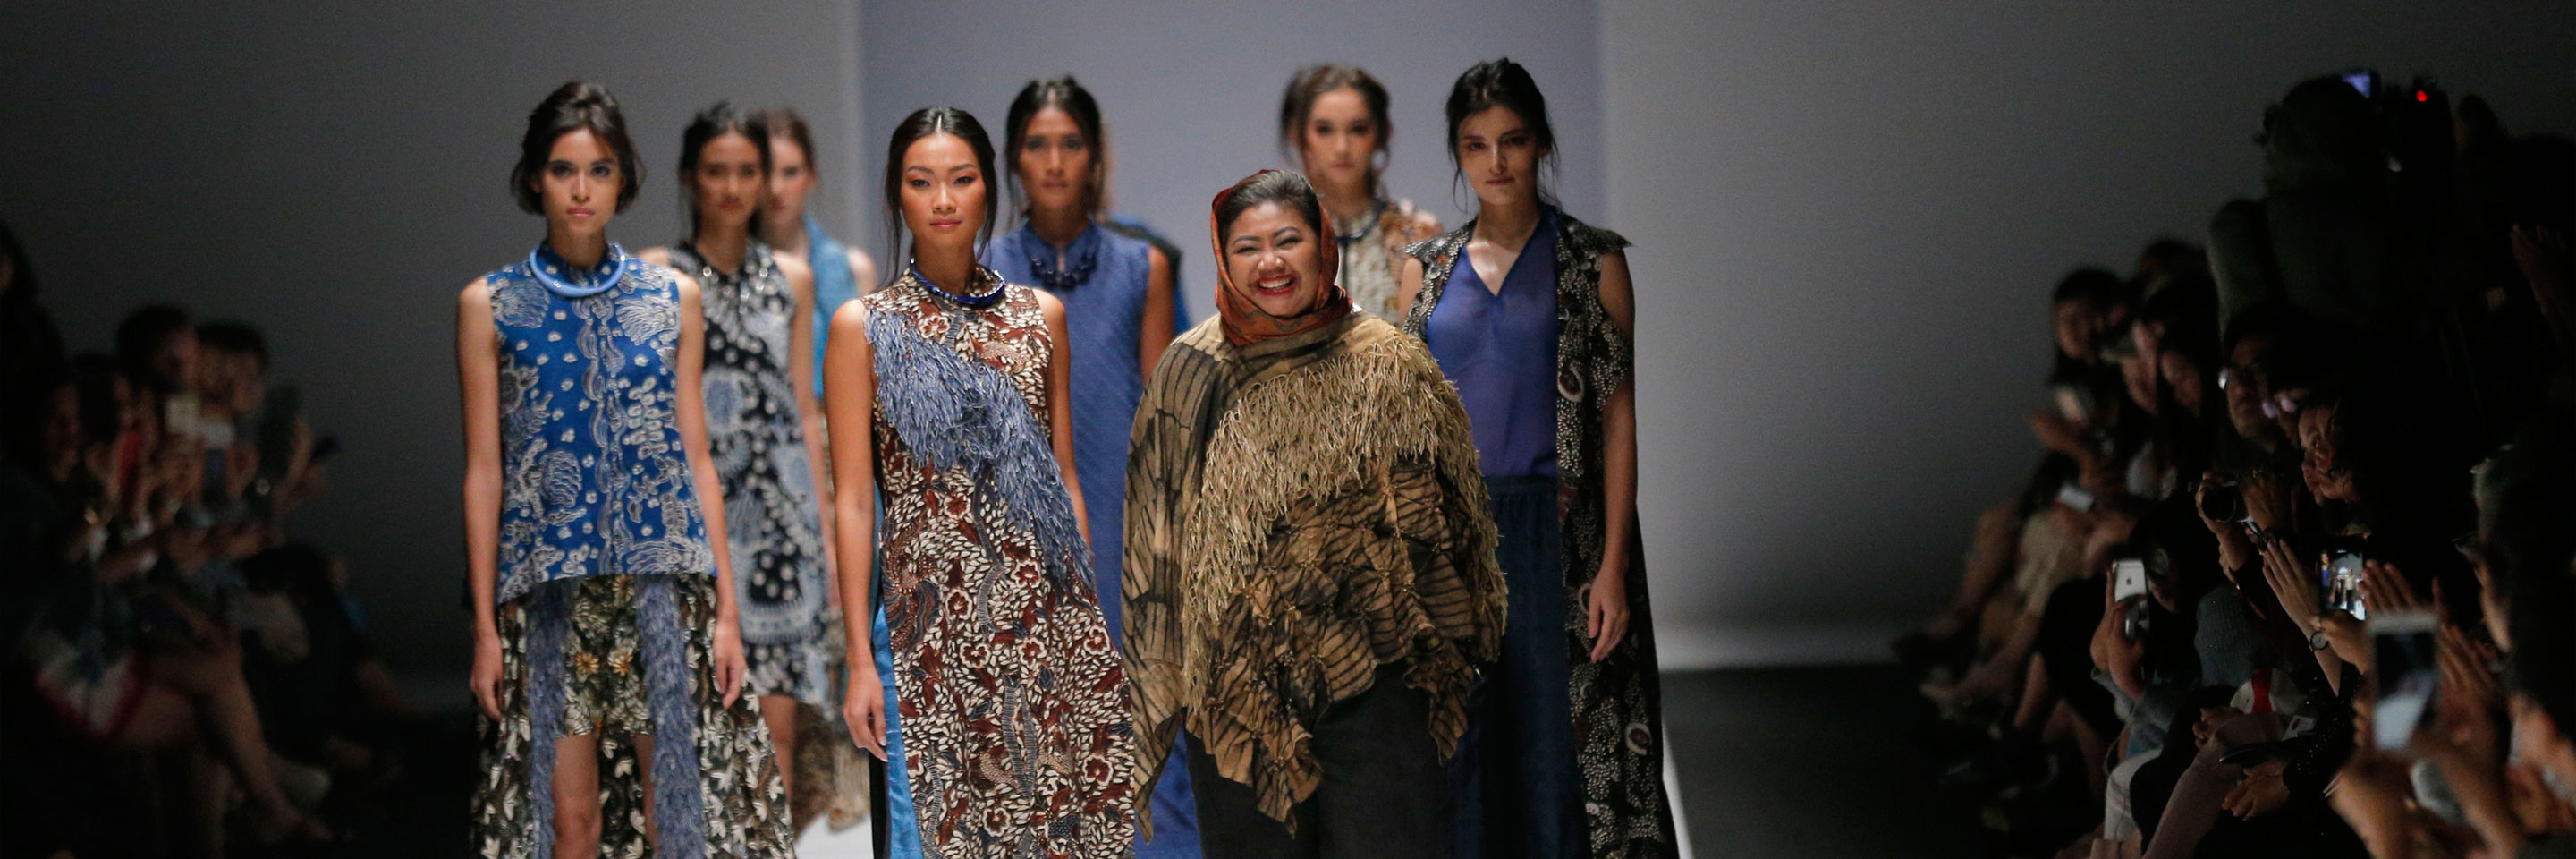 Australian alumna and fashion designer Novita Yunus showcases Indonesian and Australian flora in her striking new Batik Chic Bush collection at the Jakarta Fashion Week 2018.